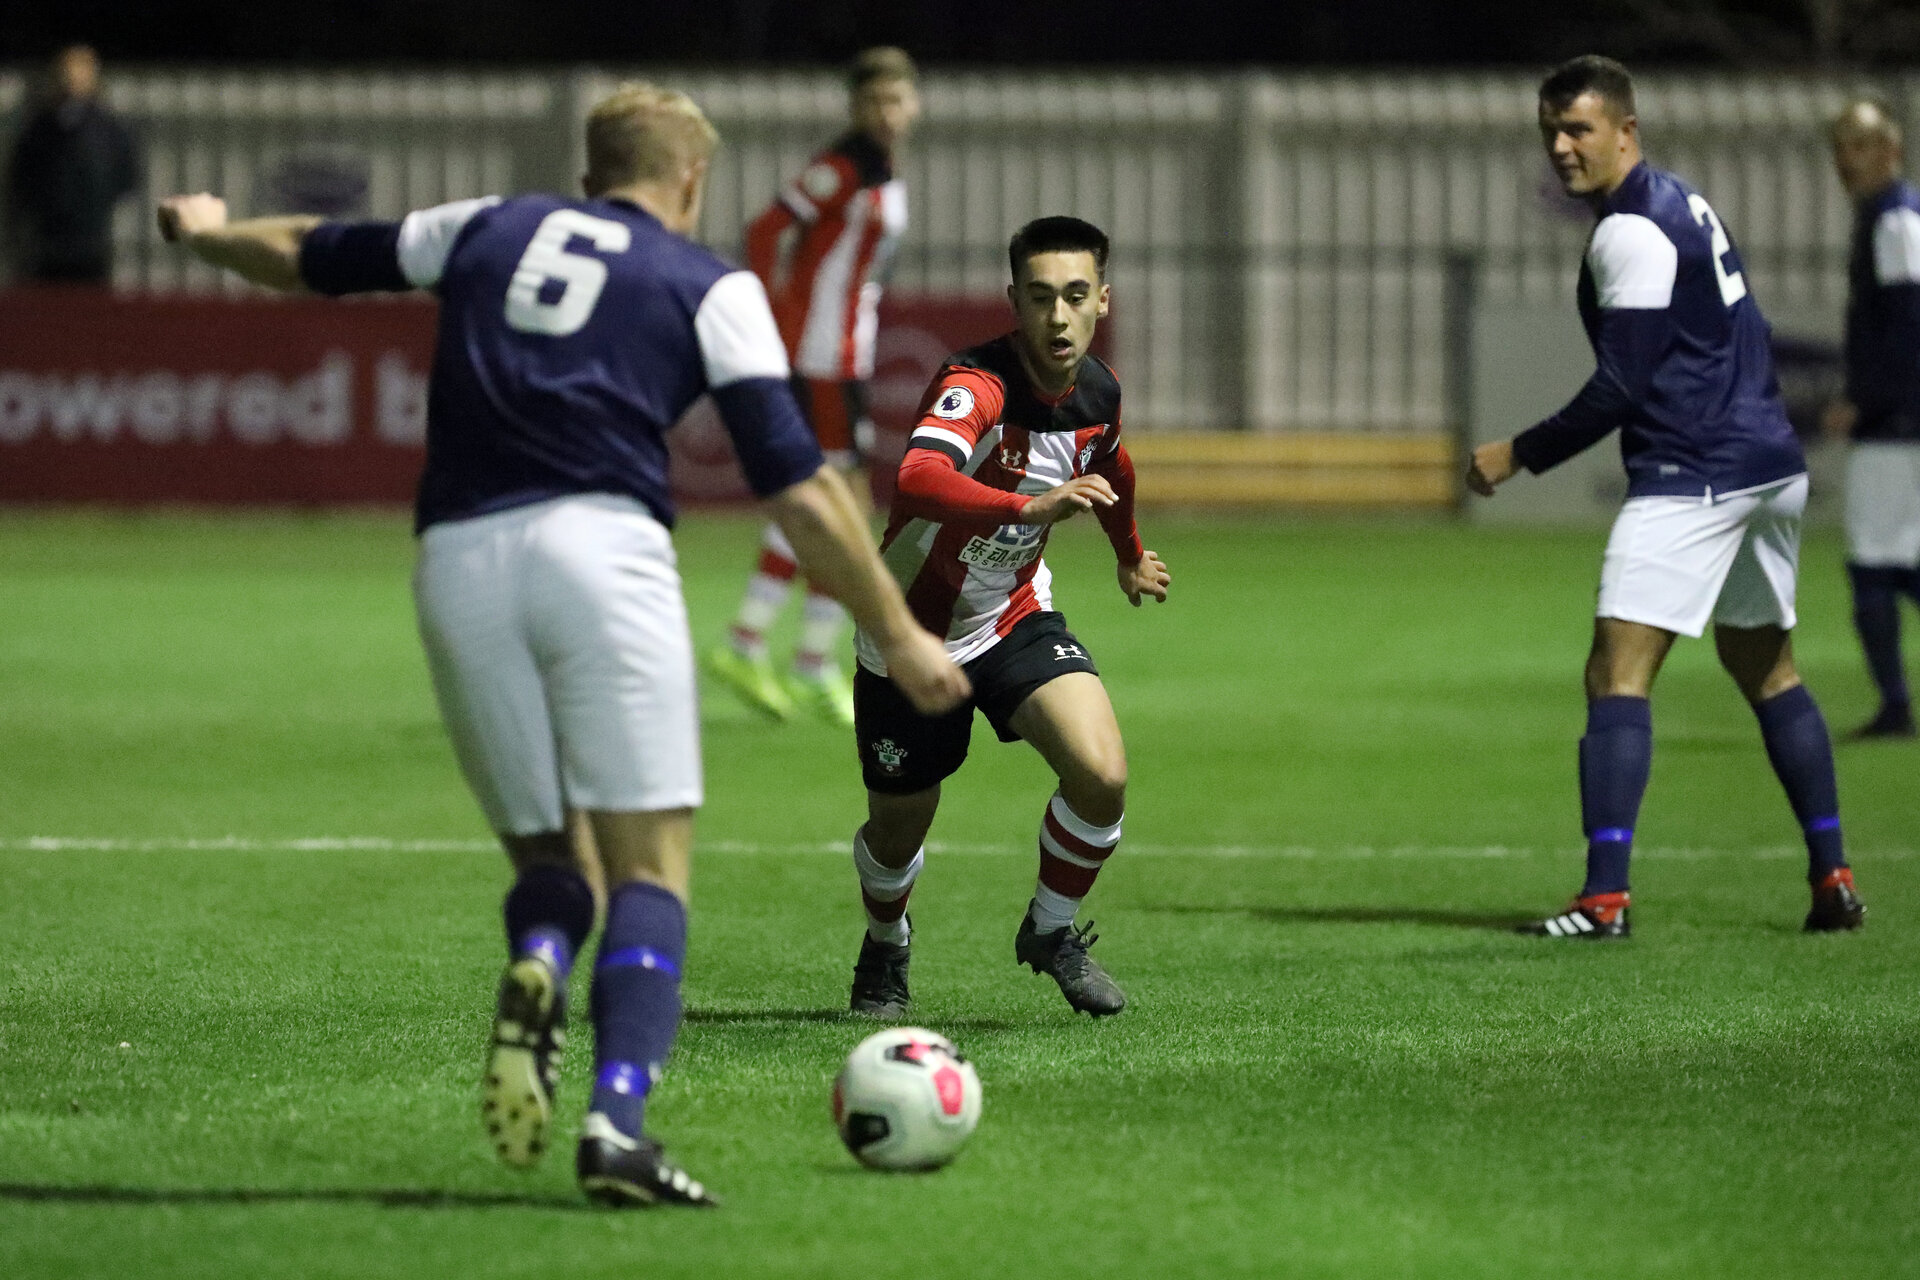 SOUTHAMPTON, ENGLAND - NOVEMBER 16: Mikey Saunders during the match between Southampton FC U23s and Royal Navy at Snows Stadium, Testwood, Totton on November 16, 2019 in the Hampshire Senior Cup at Southampton, United Kingdom. (Photo by Chris Moorhouse/Southampton FC via Getty Images)